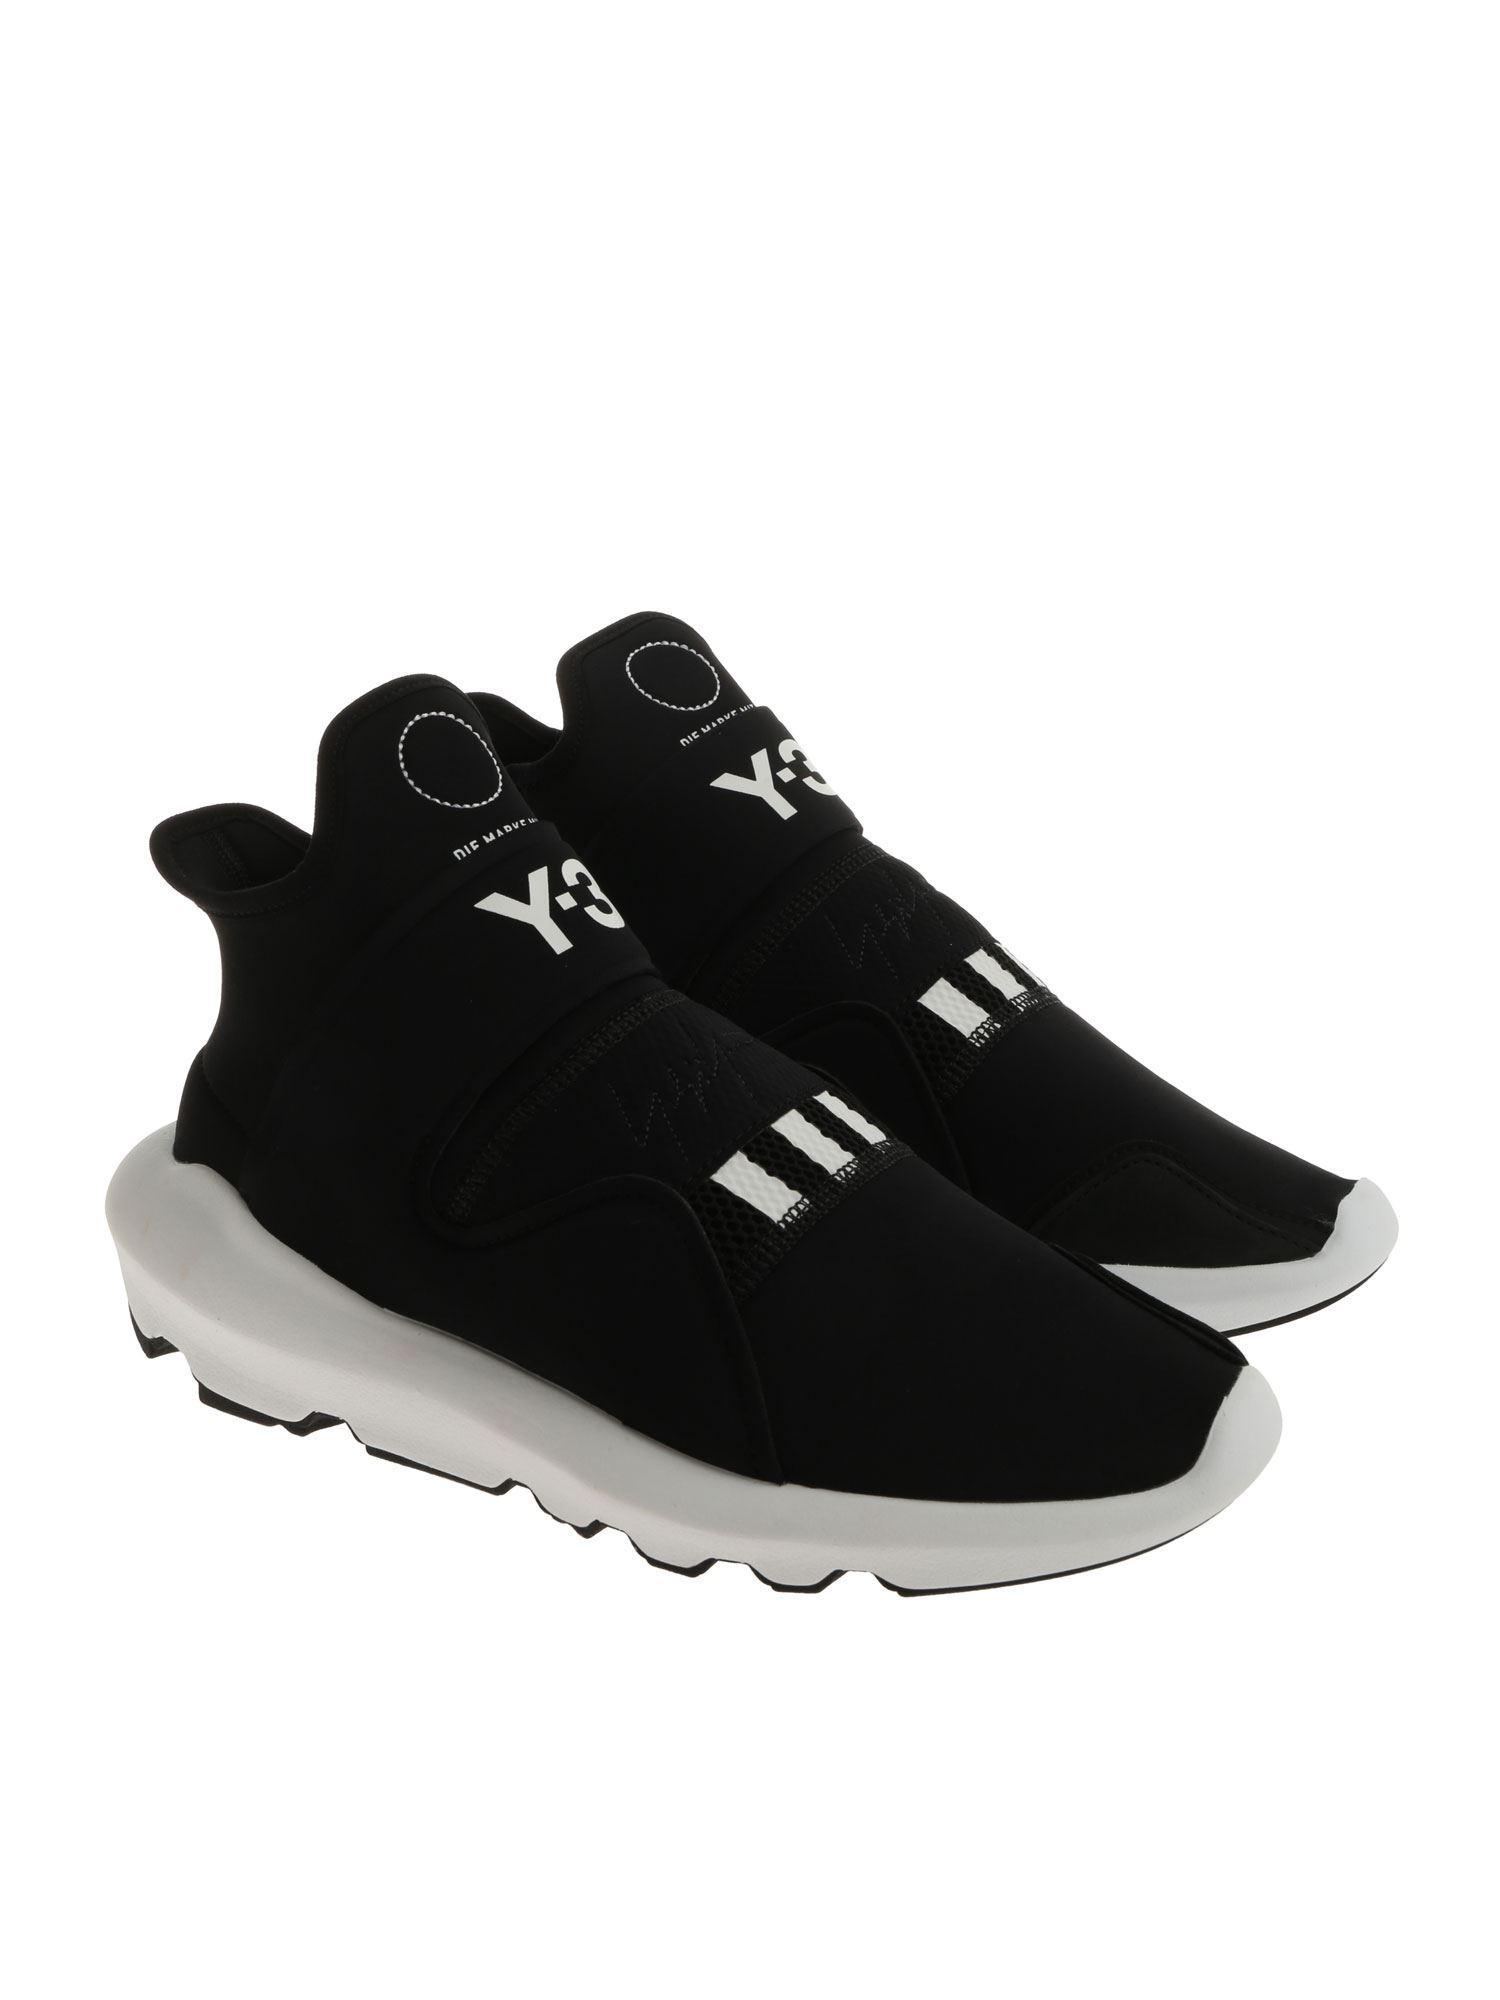 save off f3519 d1c23 Y-3 Black Suberou Sneakers With Logo Details in Black - Lyst